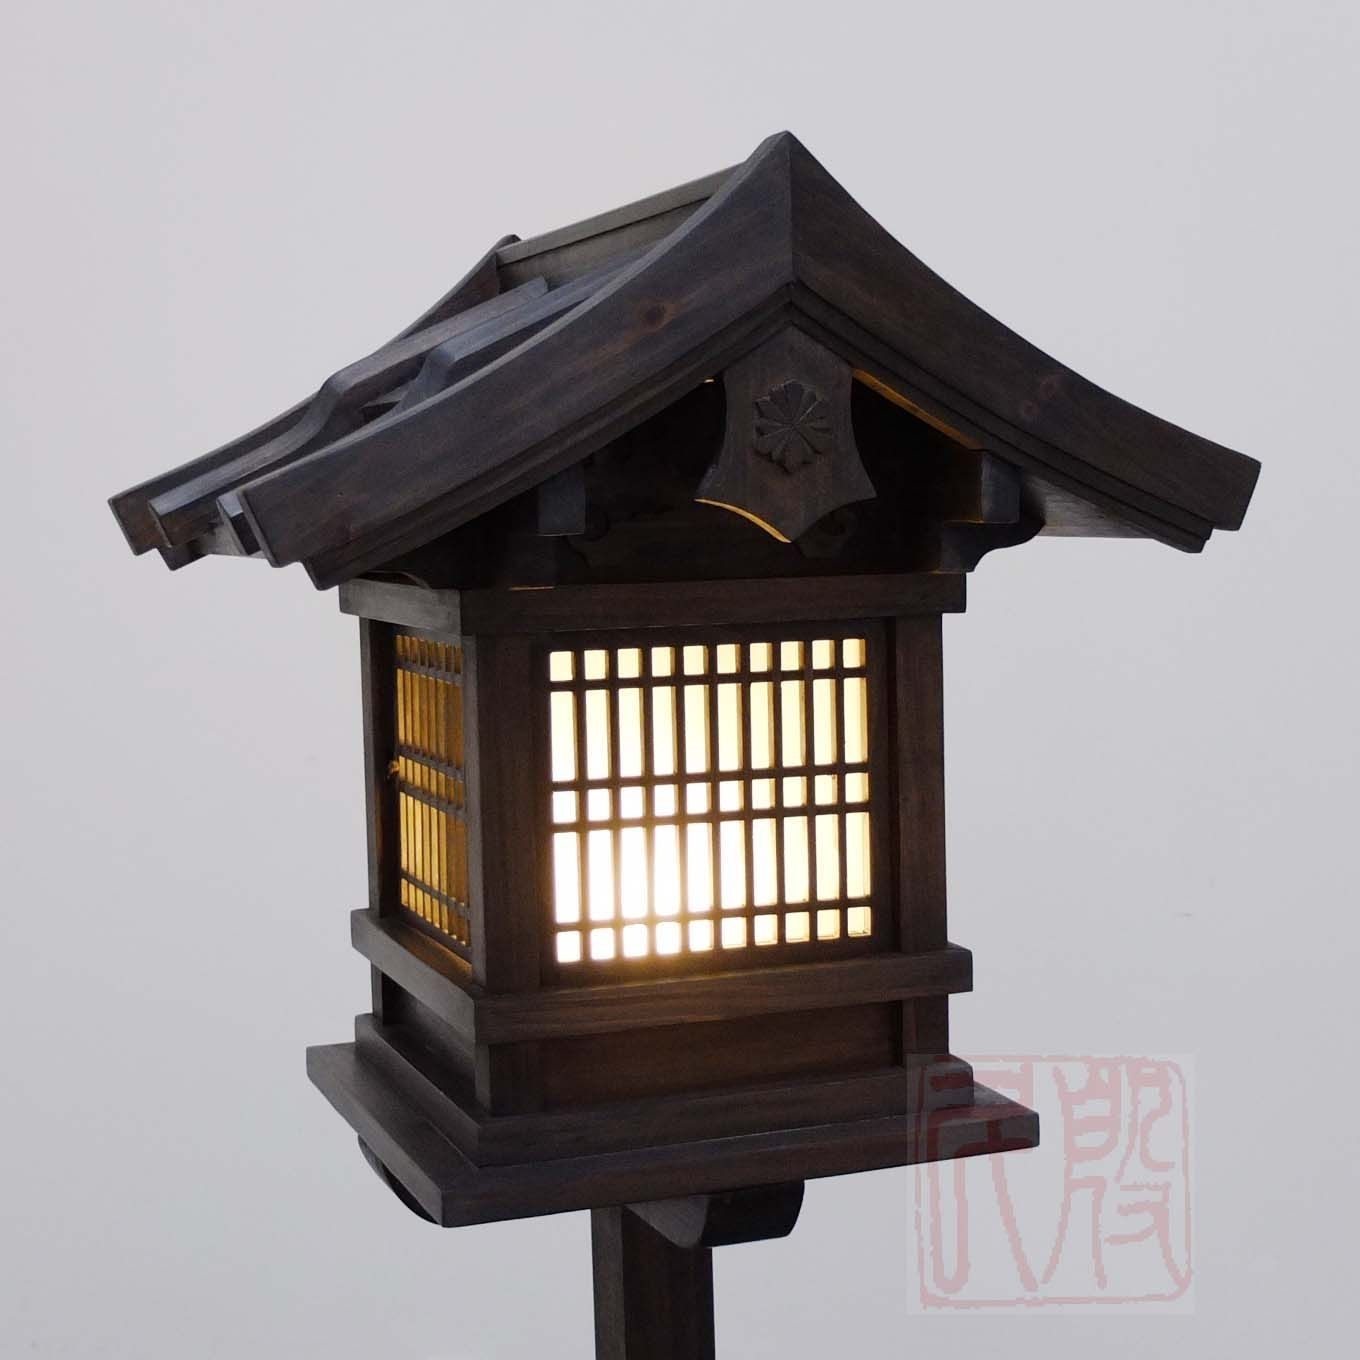 Japanese Wooden Lantern, Outdoor (Wl2) | Bonsai | Pinterest in Outdoor Wood Lanterns (Image 8 of 20)